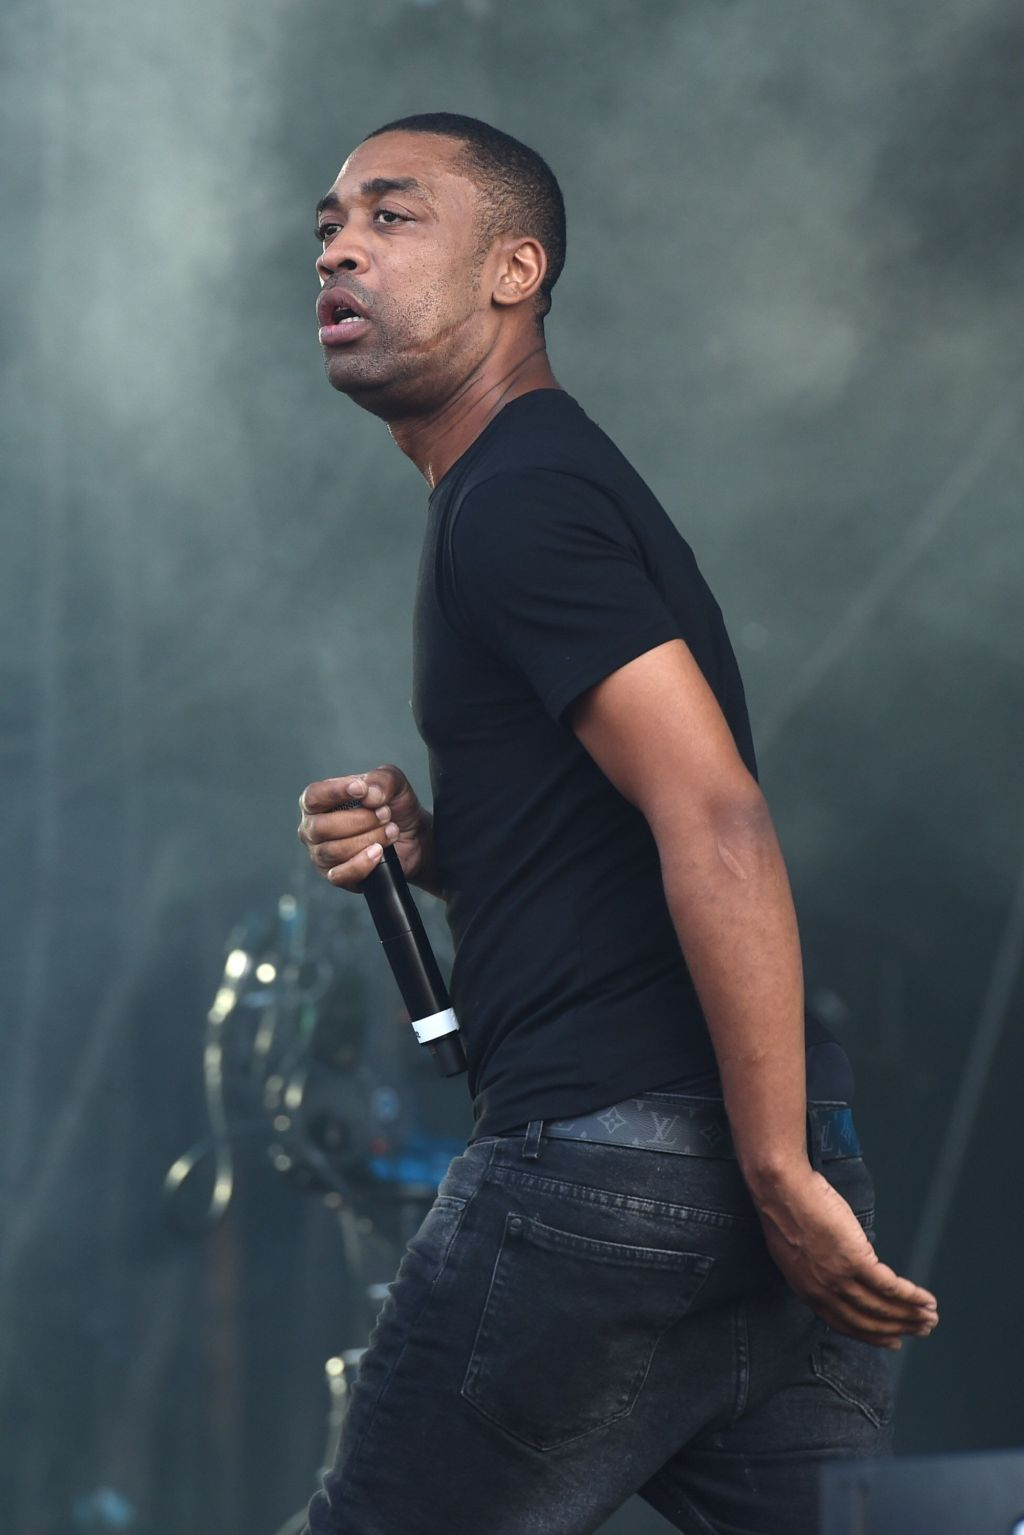 Boris Johnson Attacks Twitter And Instagram Failure To Remove Wiley's Anti-Semitic Posts